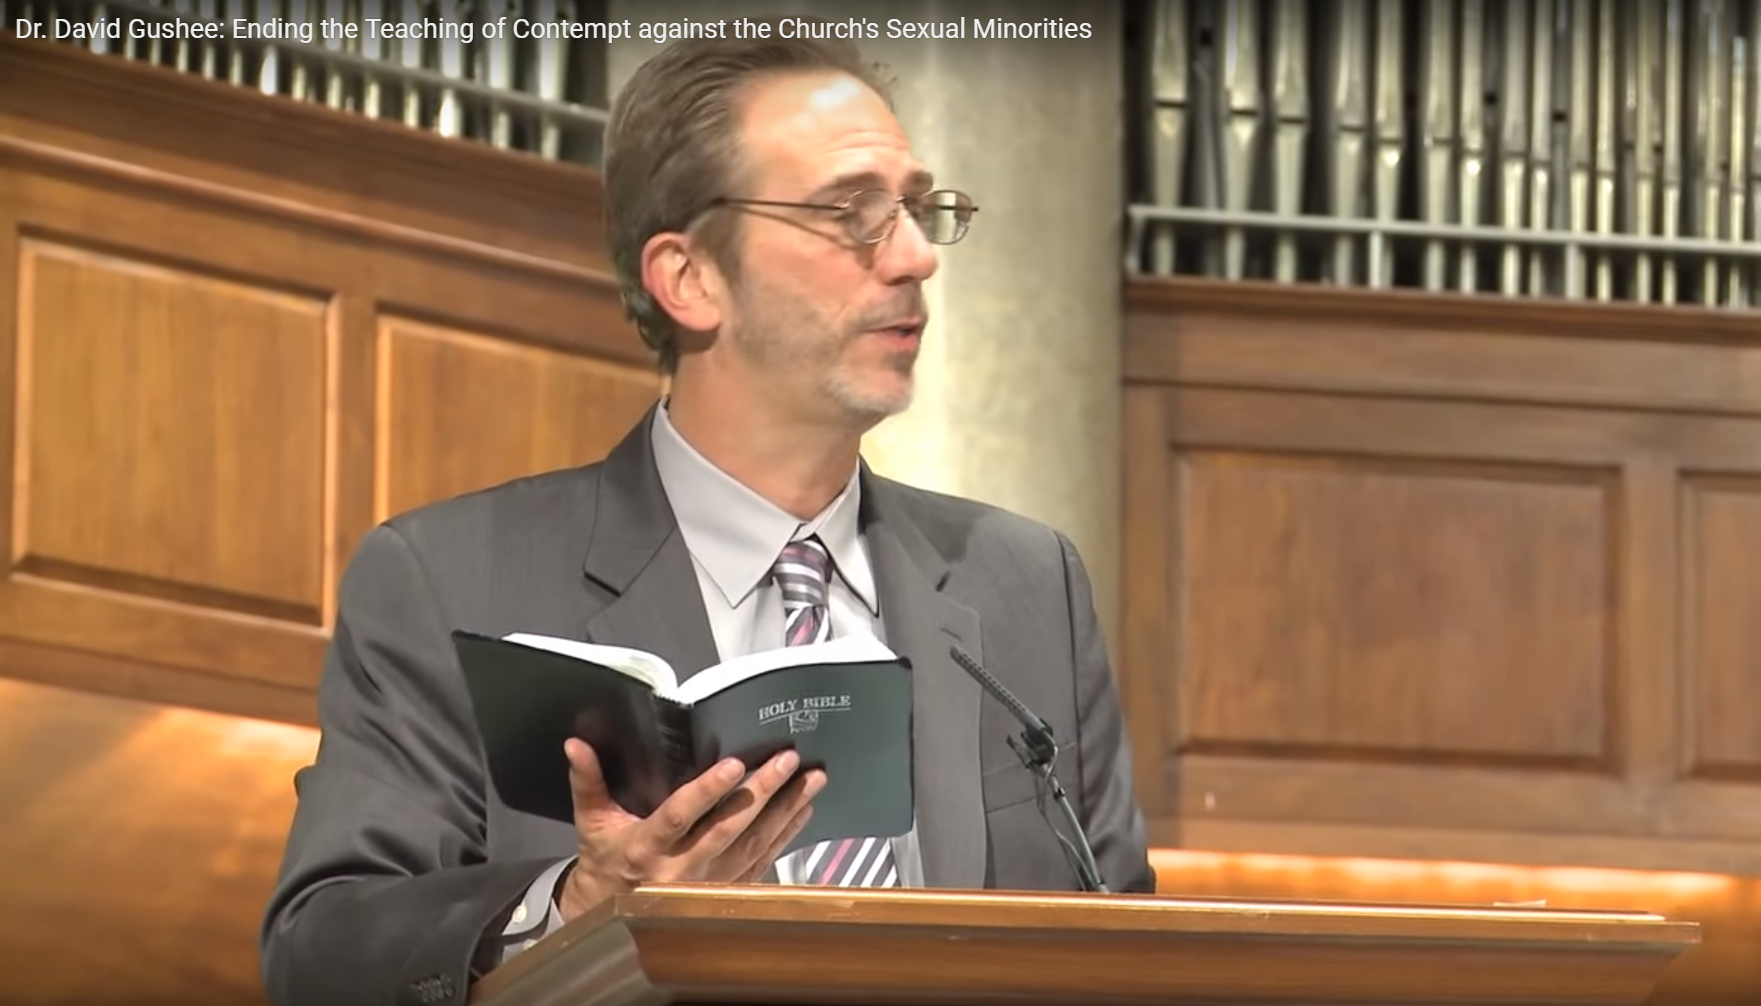 Dr. David Gushee: Ending the Teaching of Contempt against the Church's Sexual Minorities